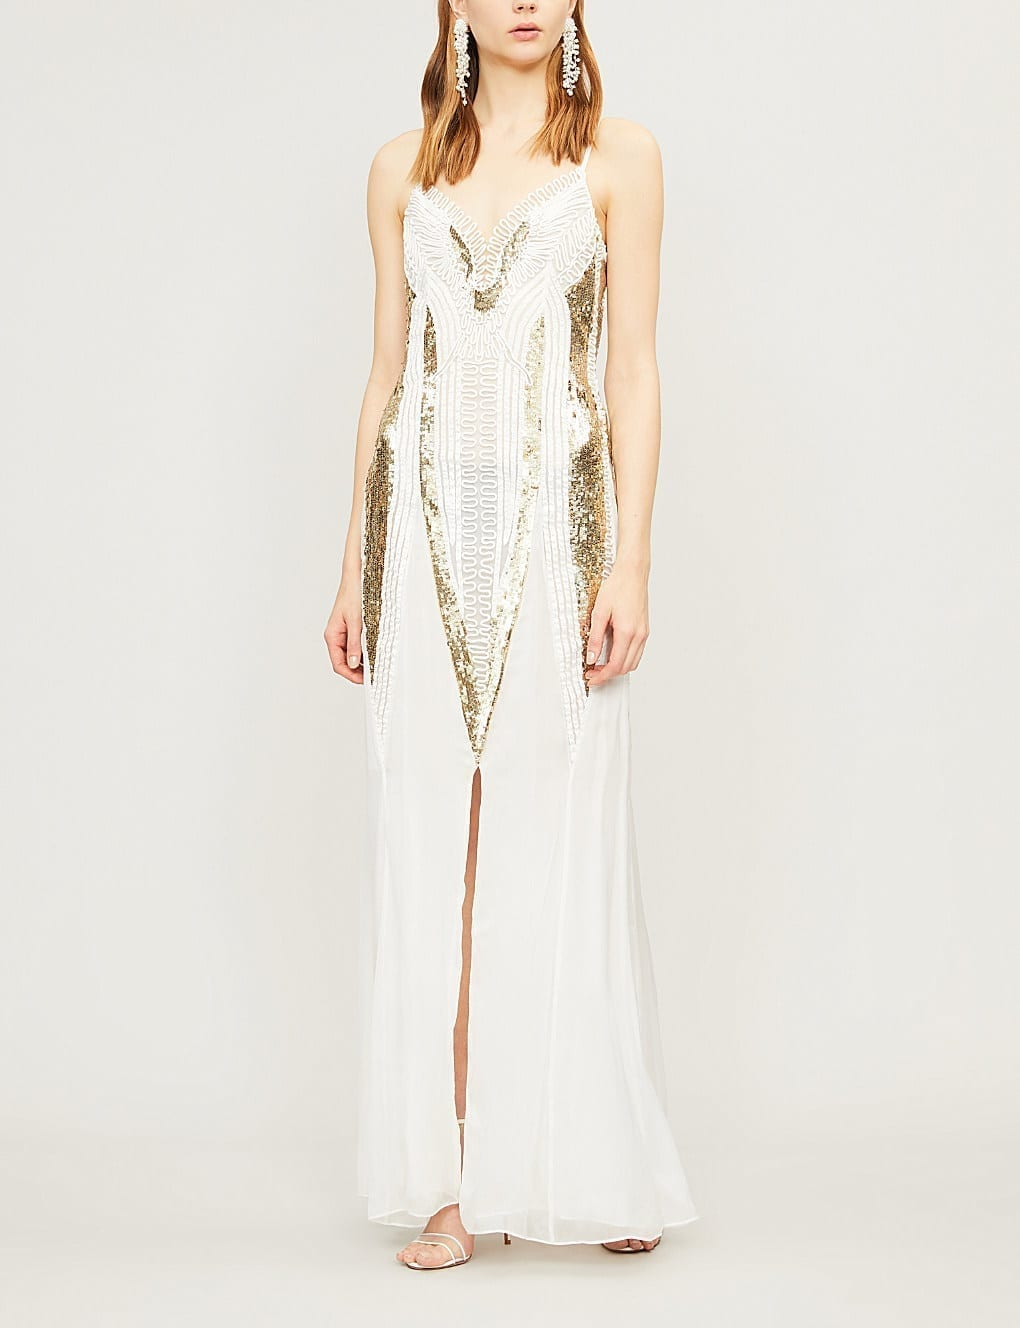 TEMPERLEY LONDON Moondrop Sequinned White Dress